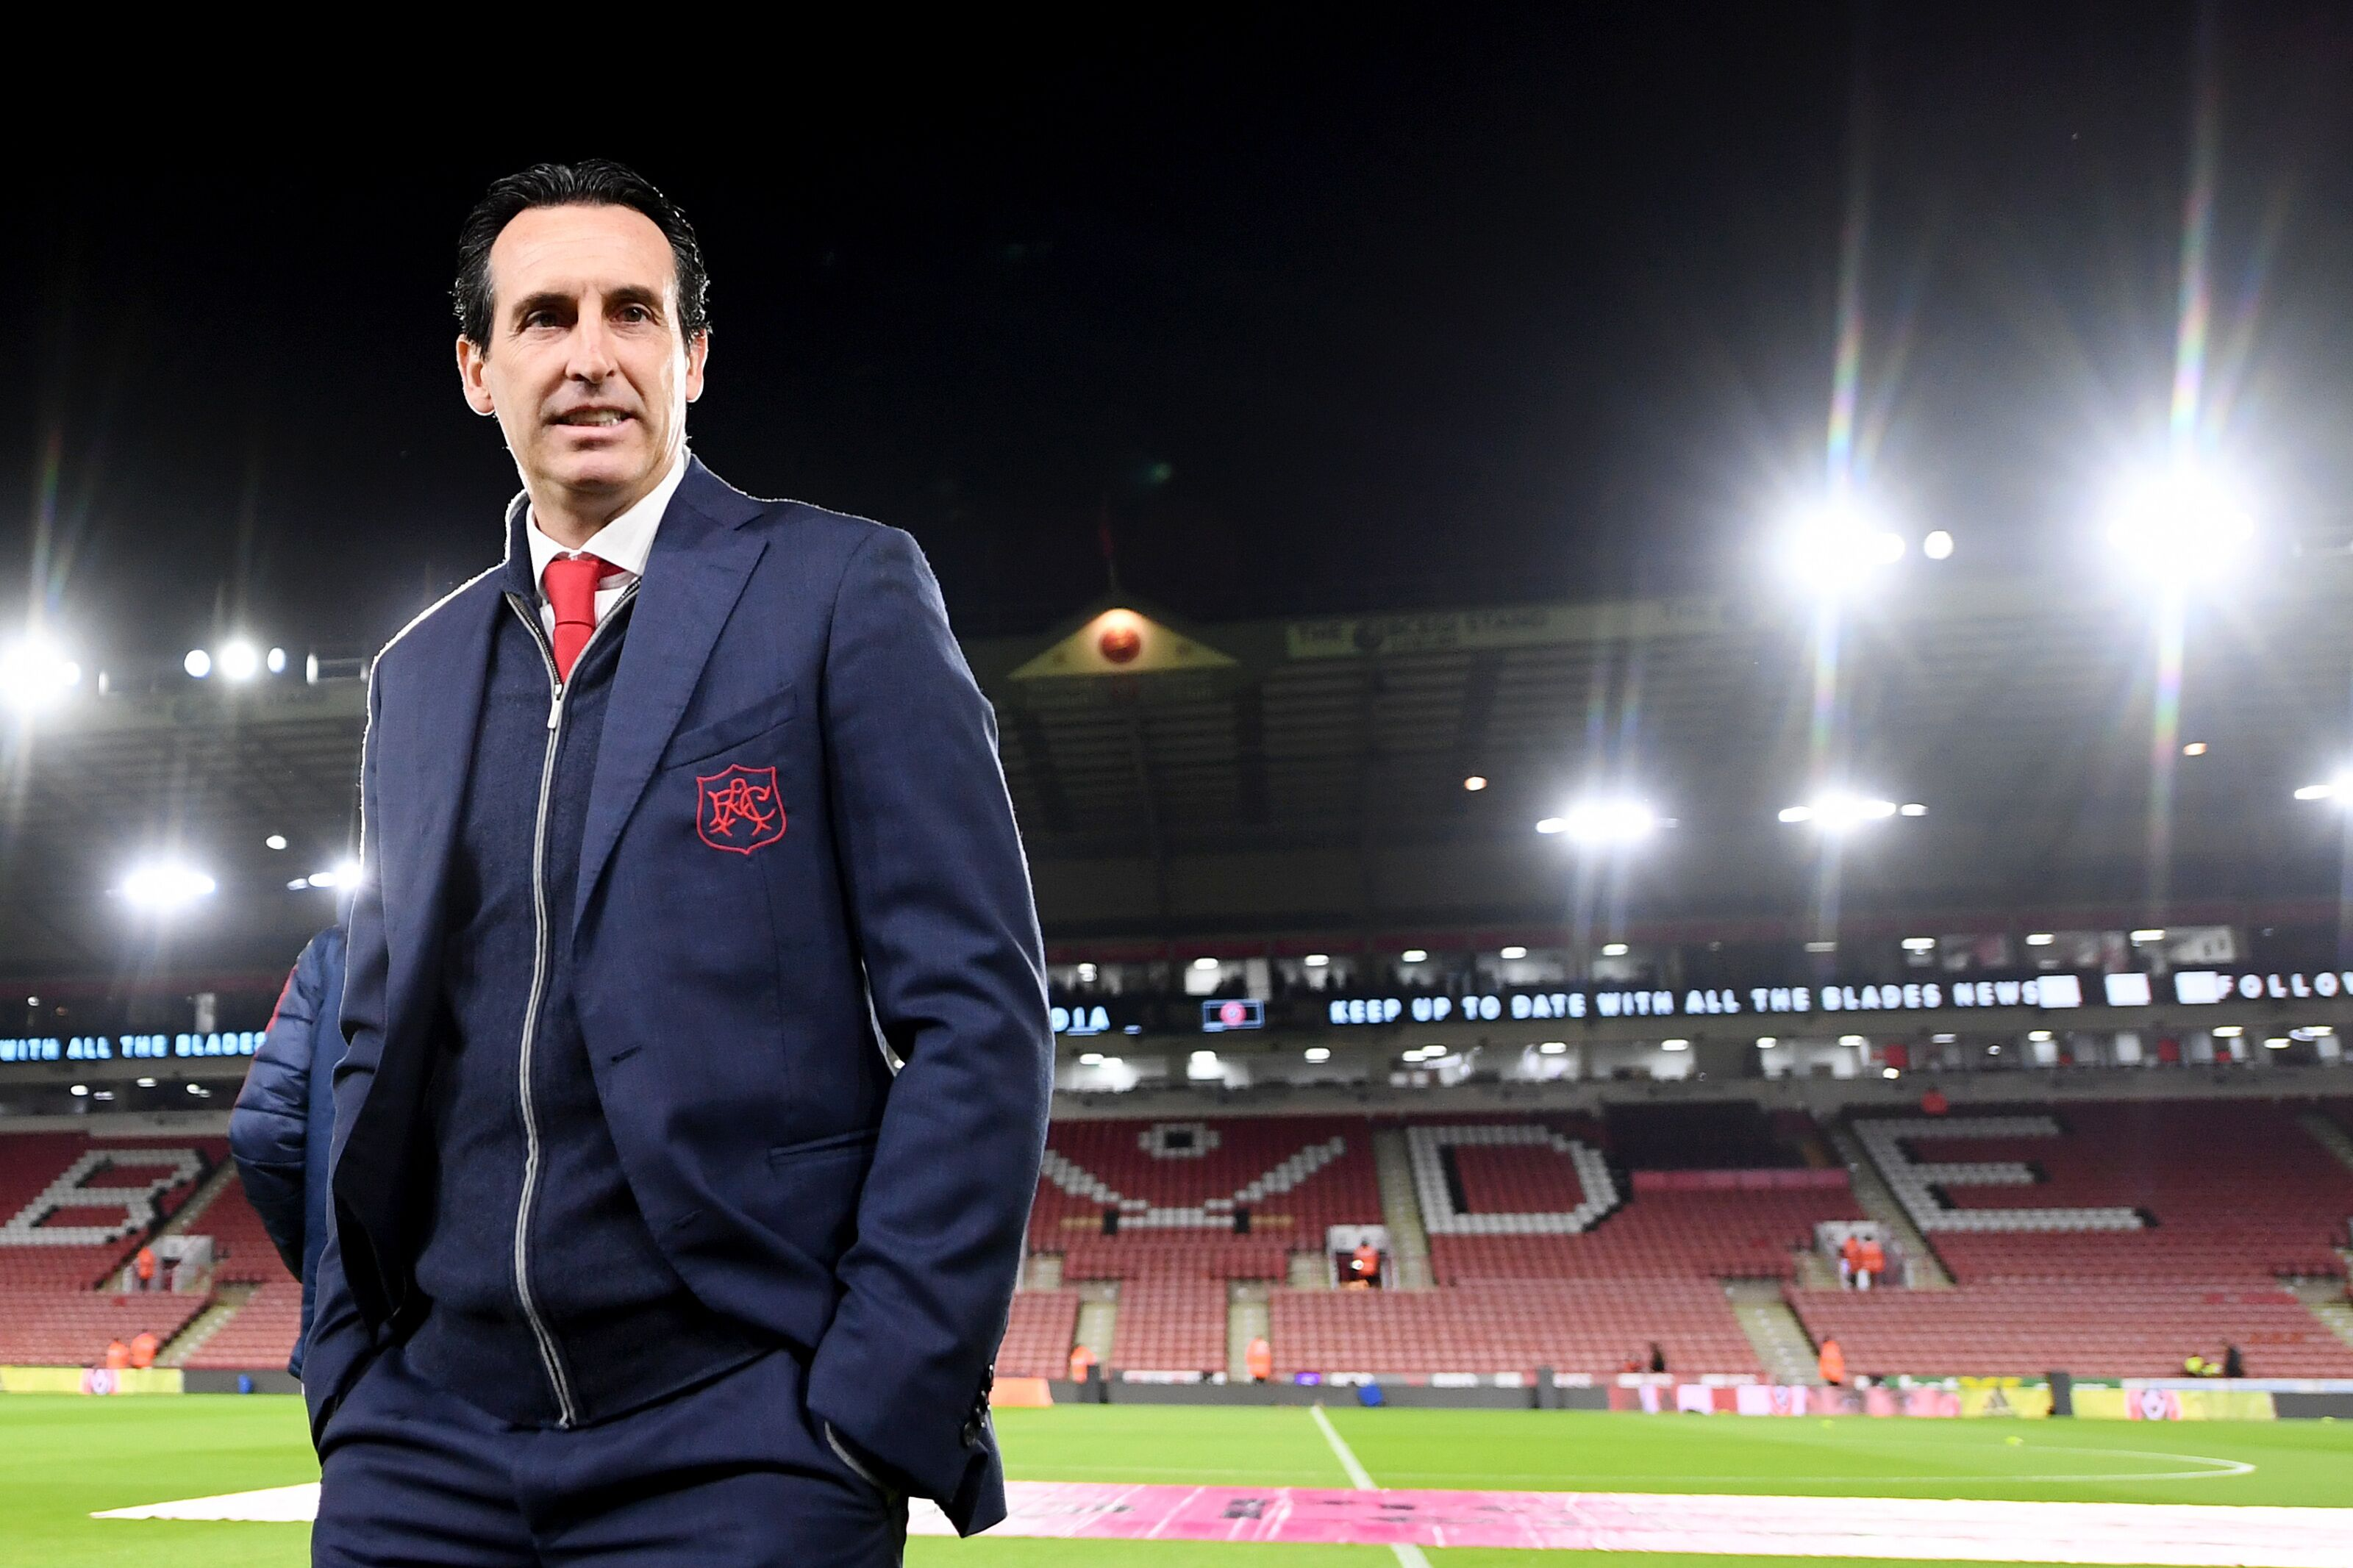 Arsenal and Unai Emery: Change is needed